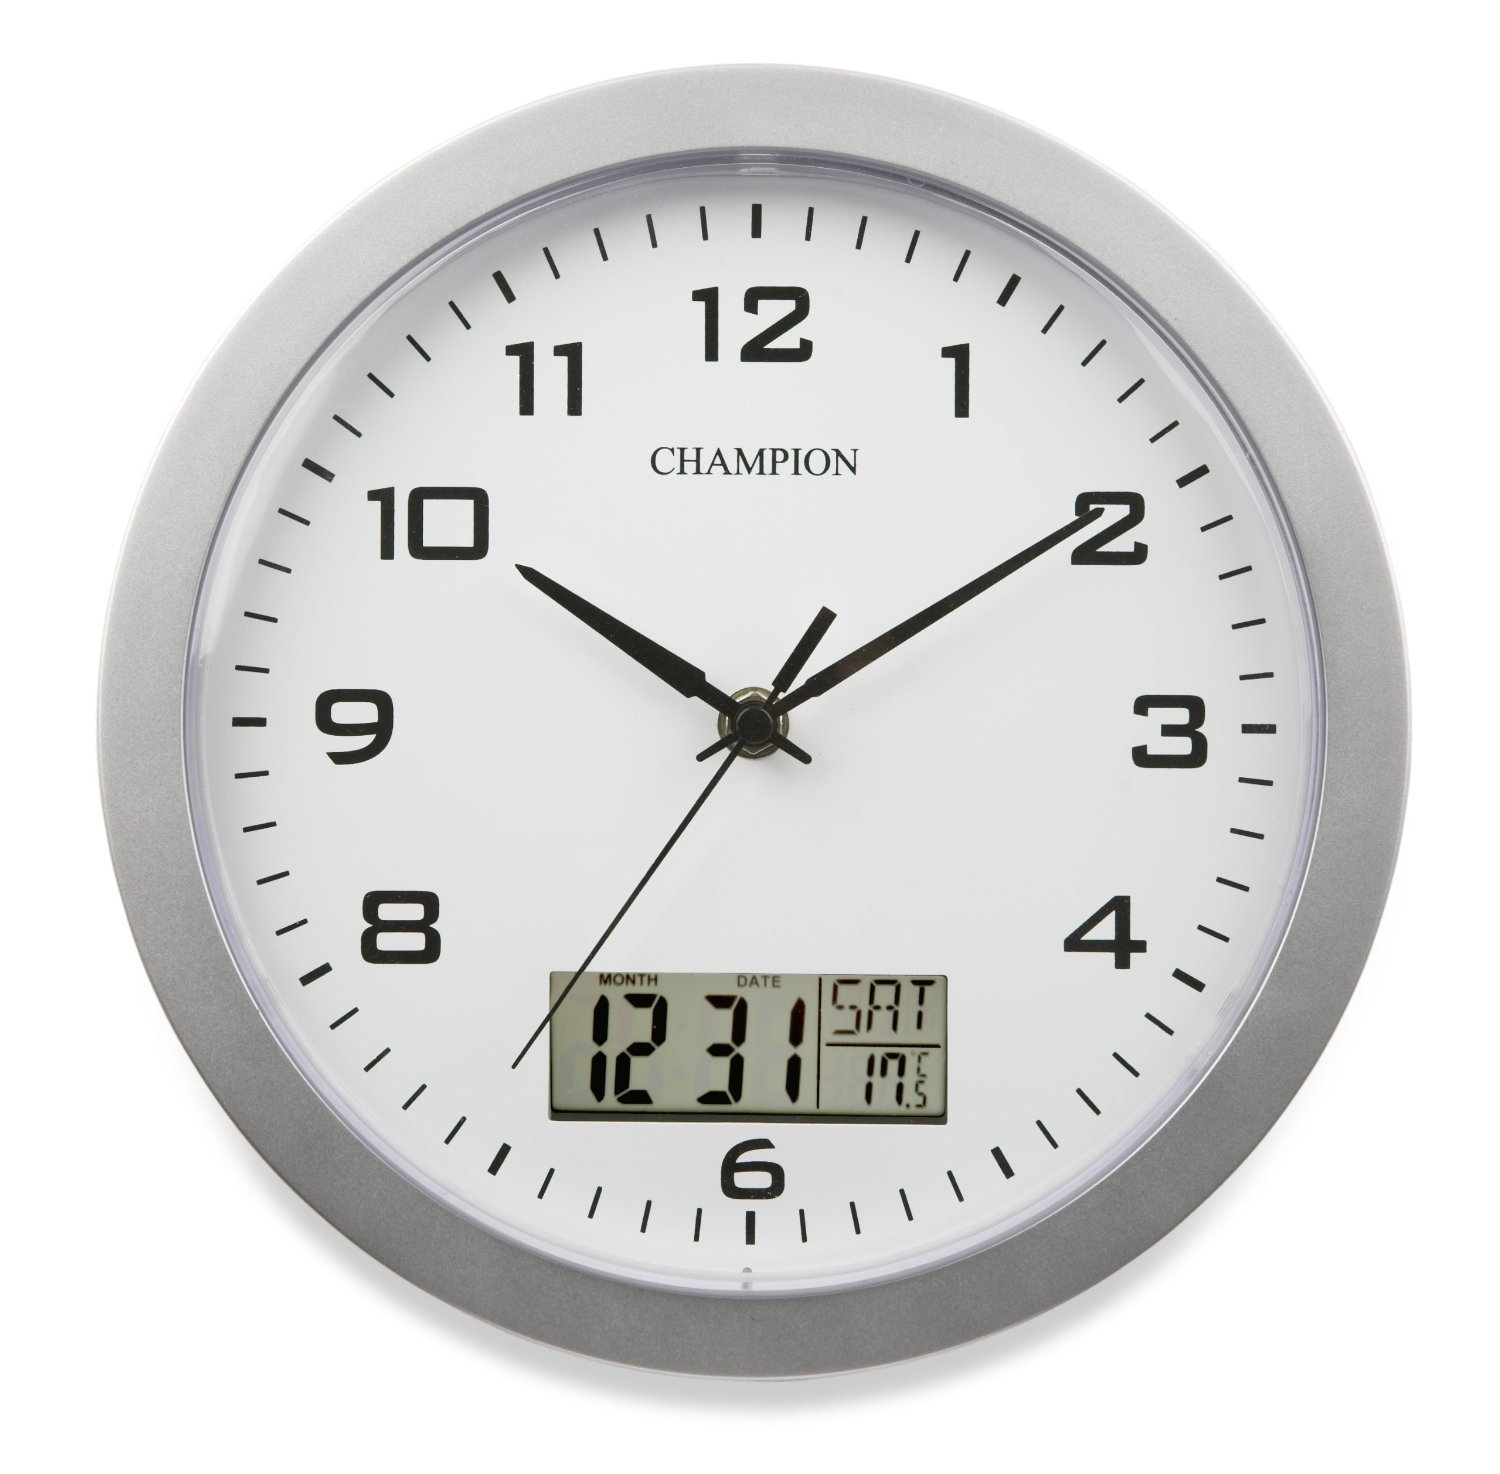 Champion 25cm quartz wall clock with inset lcd display with day champion 25cm quartz wall clock with inset lcd display with daydate silver amazon kitchen home amipublicfo Images